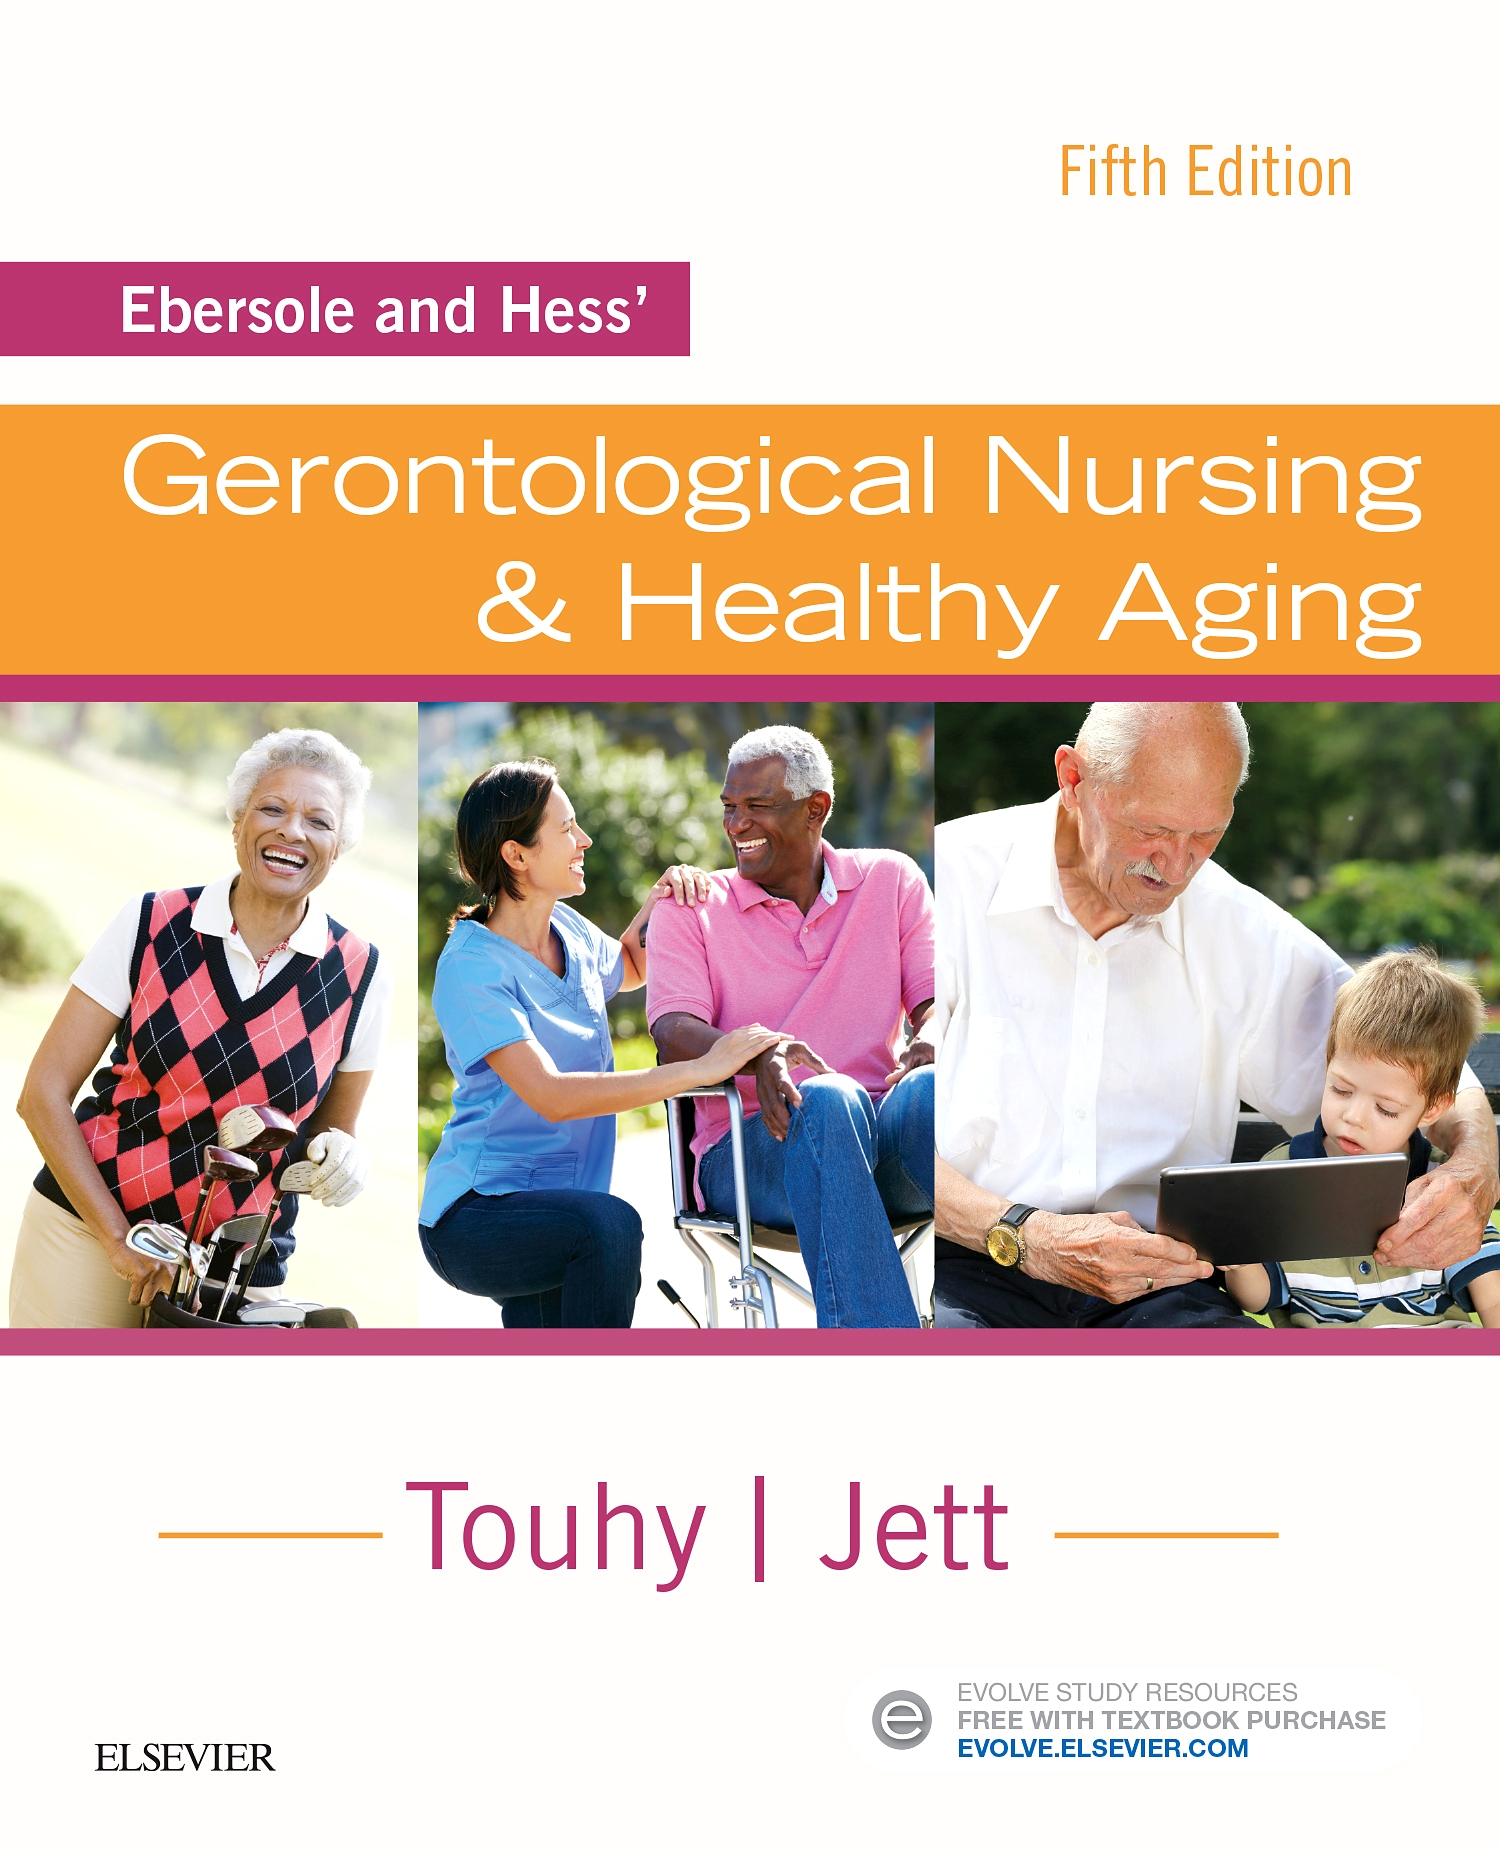 Evolve Resources for Ebersole and Hess' Gerontological Nursing & Healthy Aging, 5th Edition